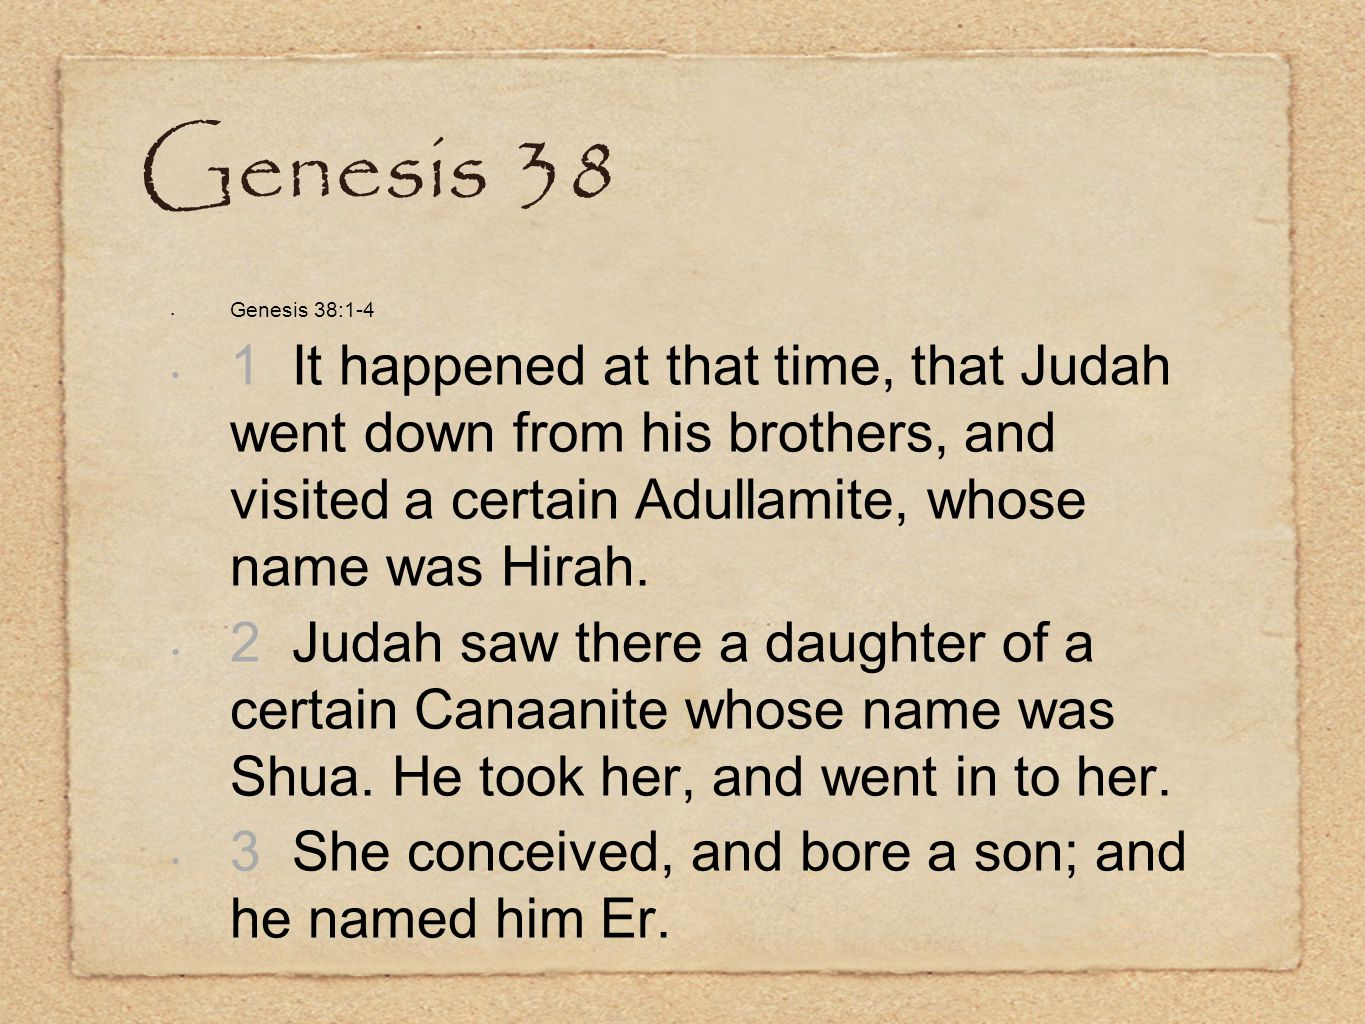 Genesis 38 Genesis 38:1-4 1 It happened at that time, that Judah went down from his brothers, and visited a certain Adullamite, whose name was Hirah.